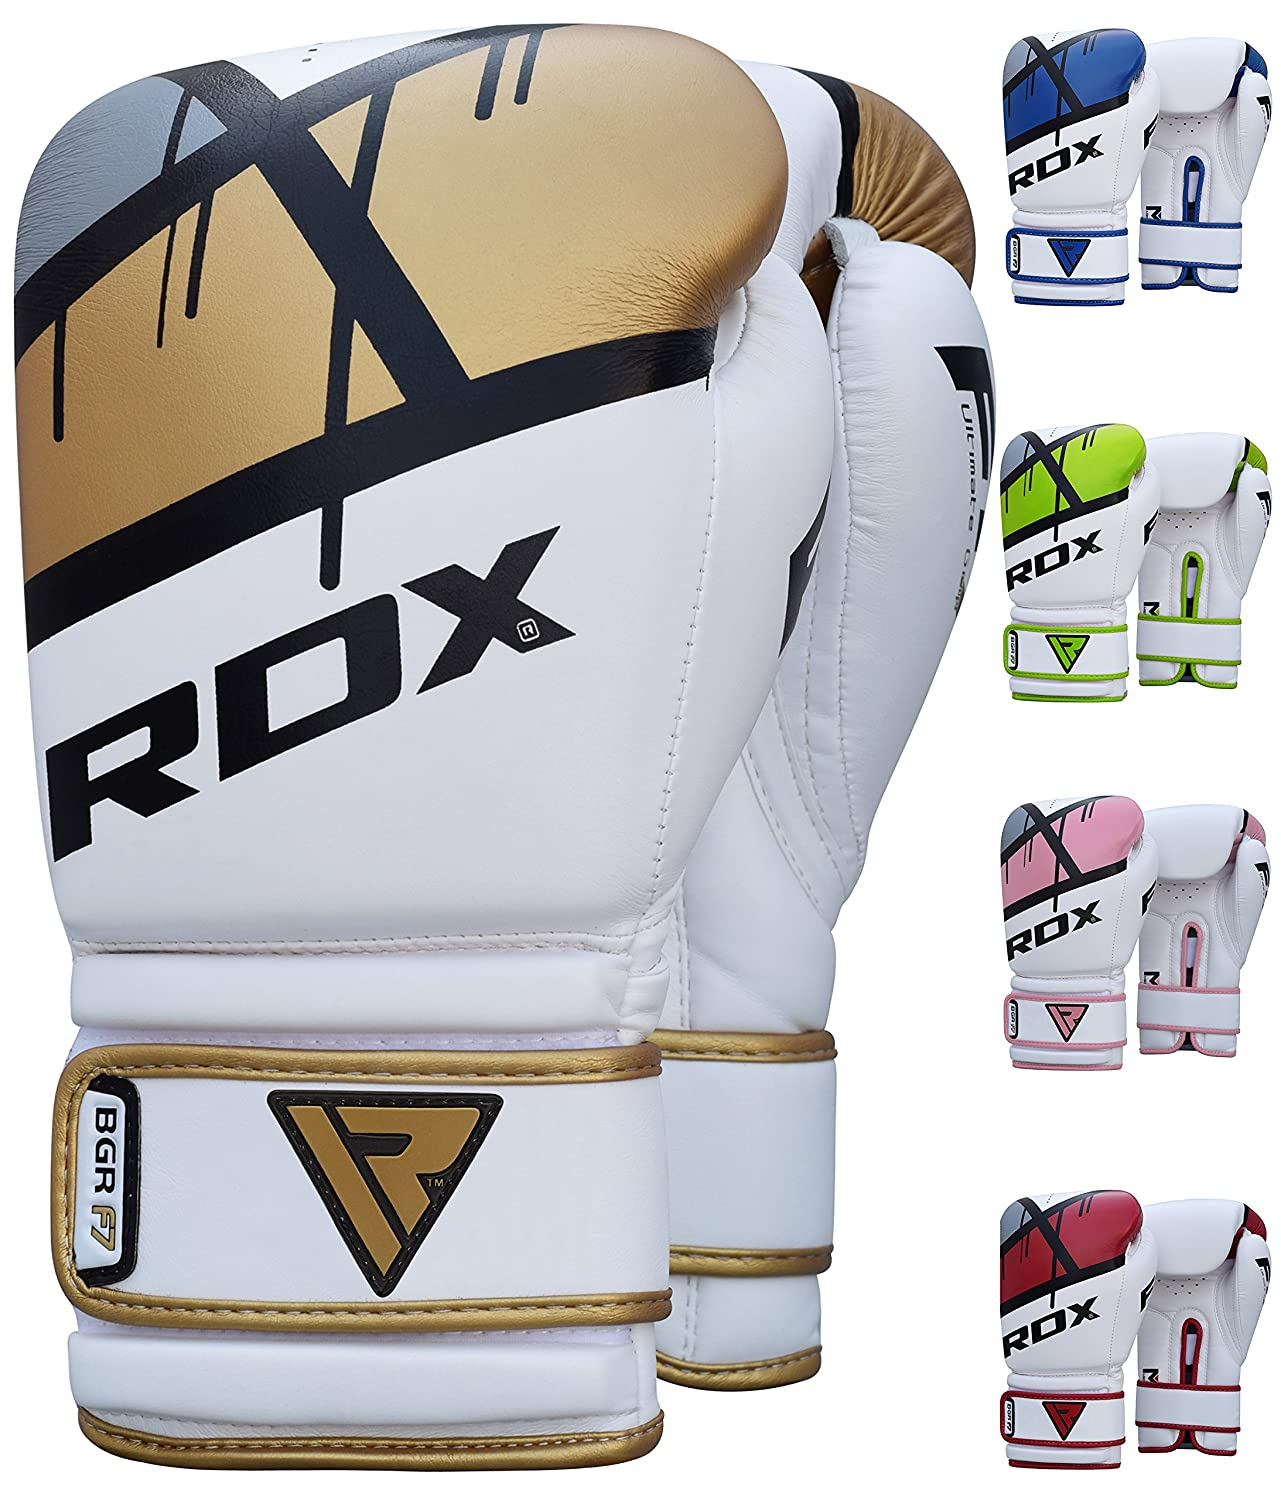 Best Boxing Gloves For Heavy Bag Work 2019 - Reviews